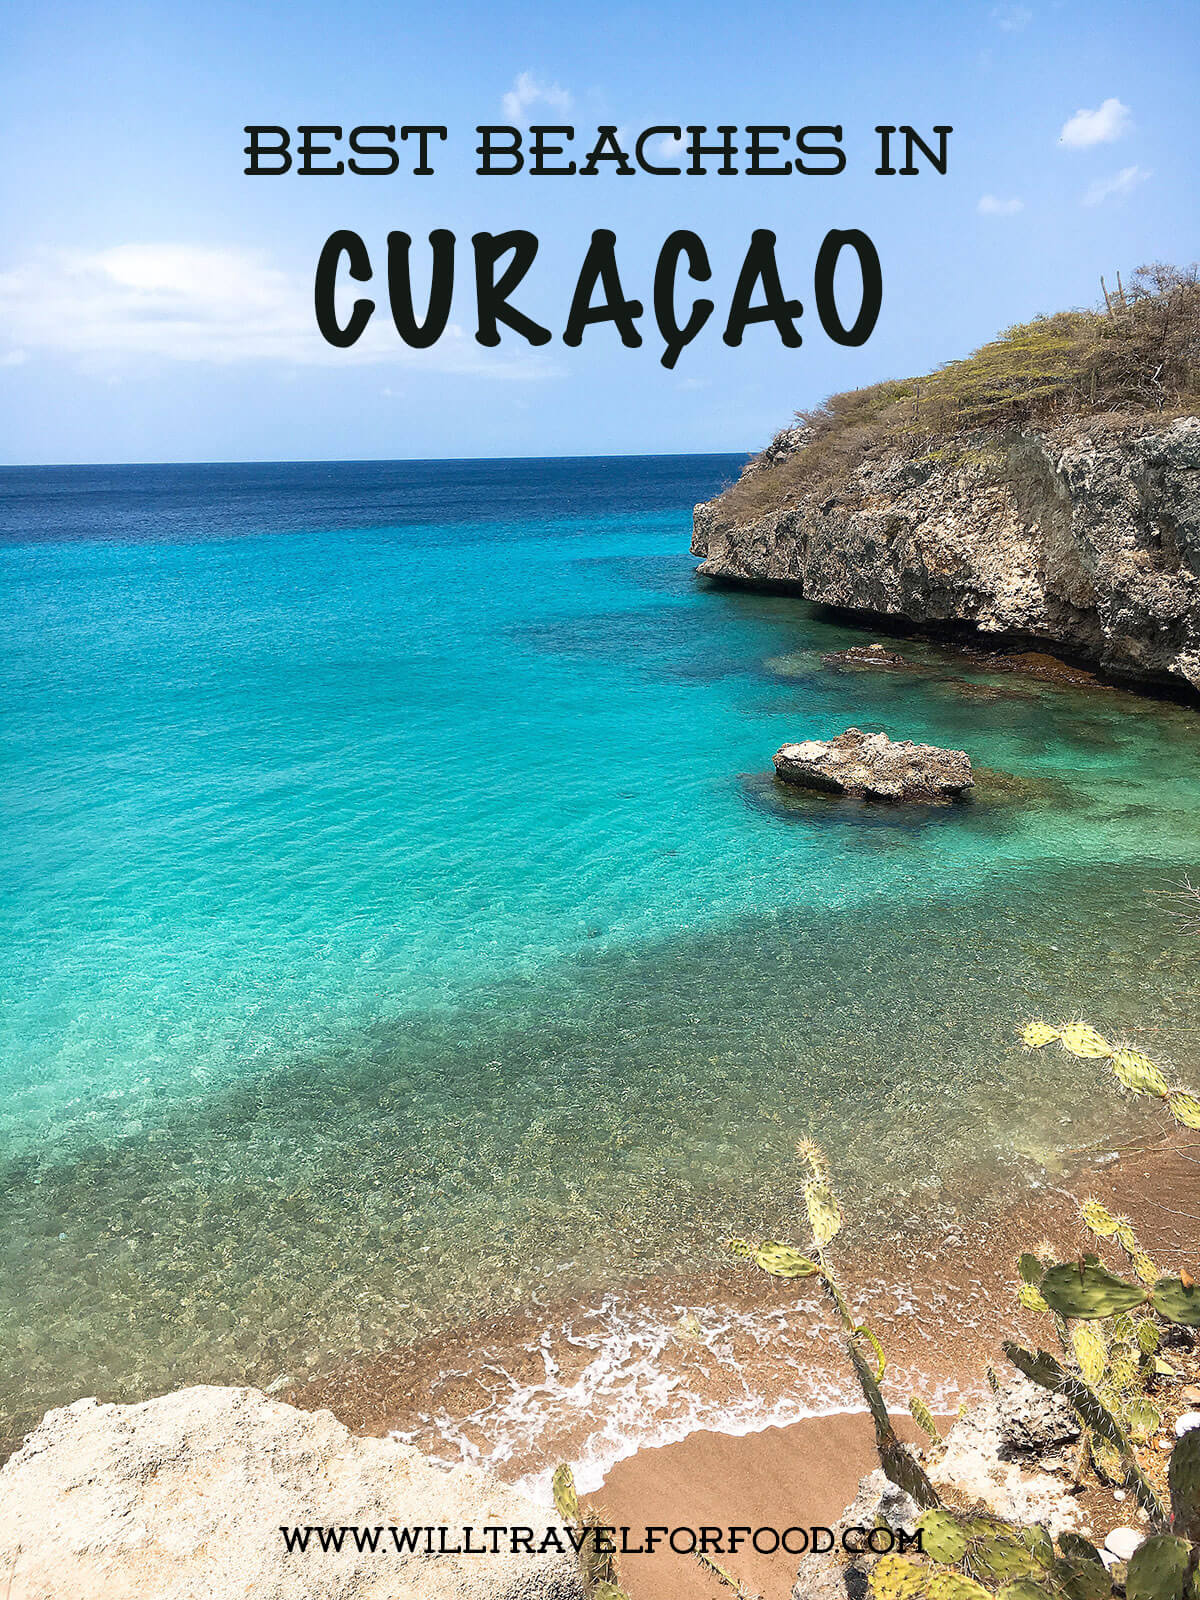 curacao best beaches © Will Travel for Food